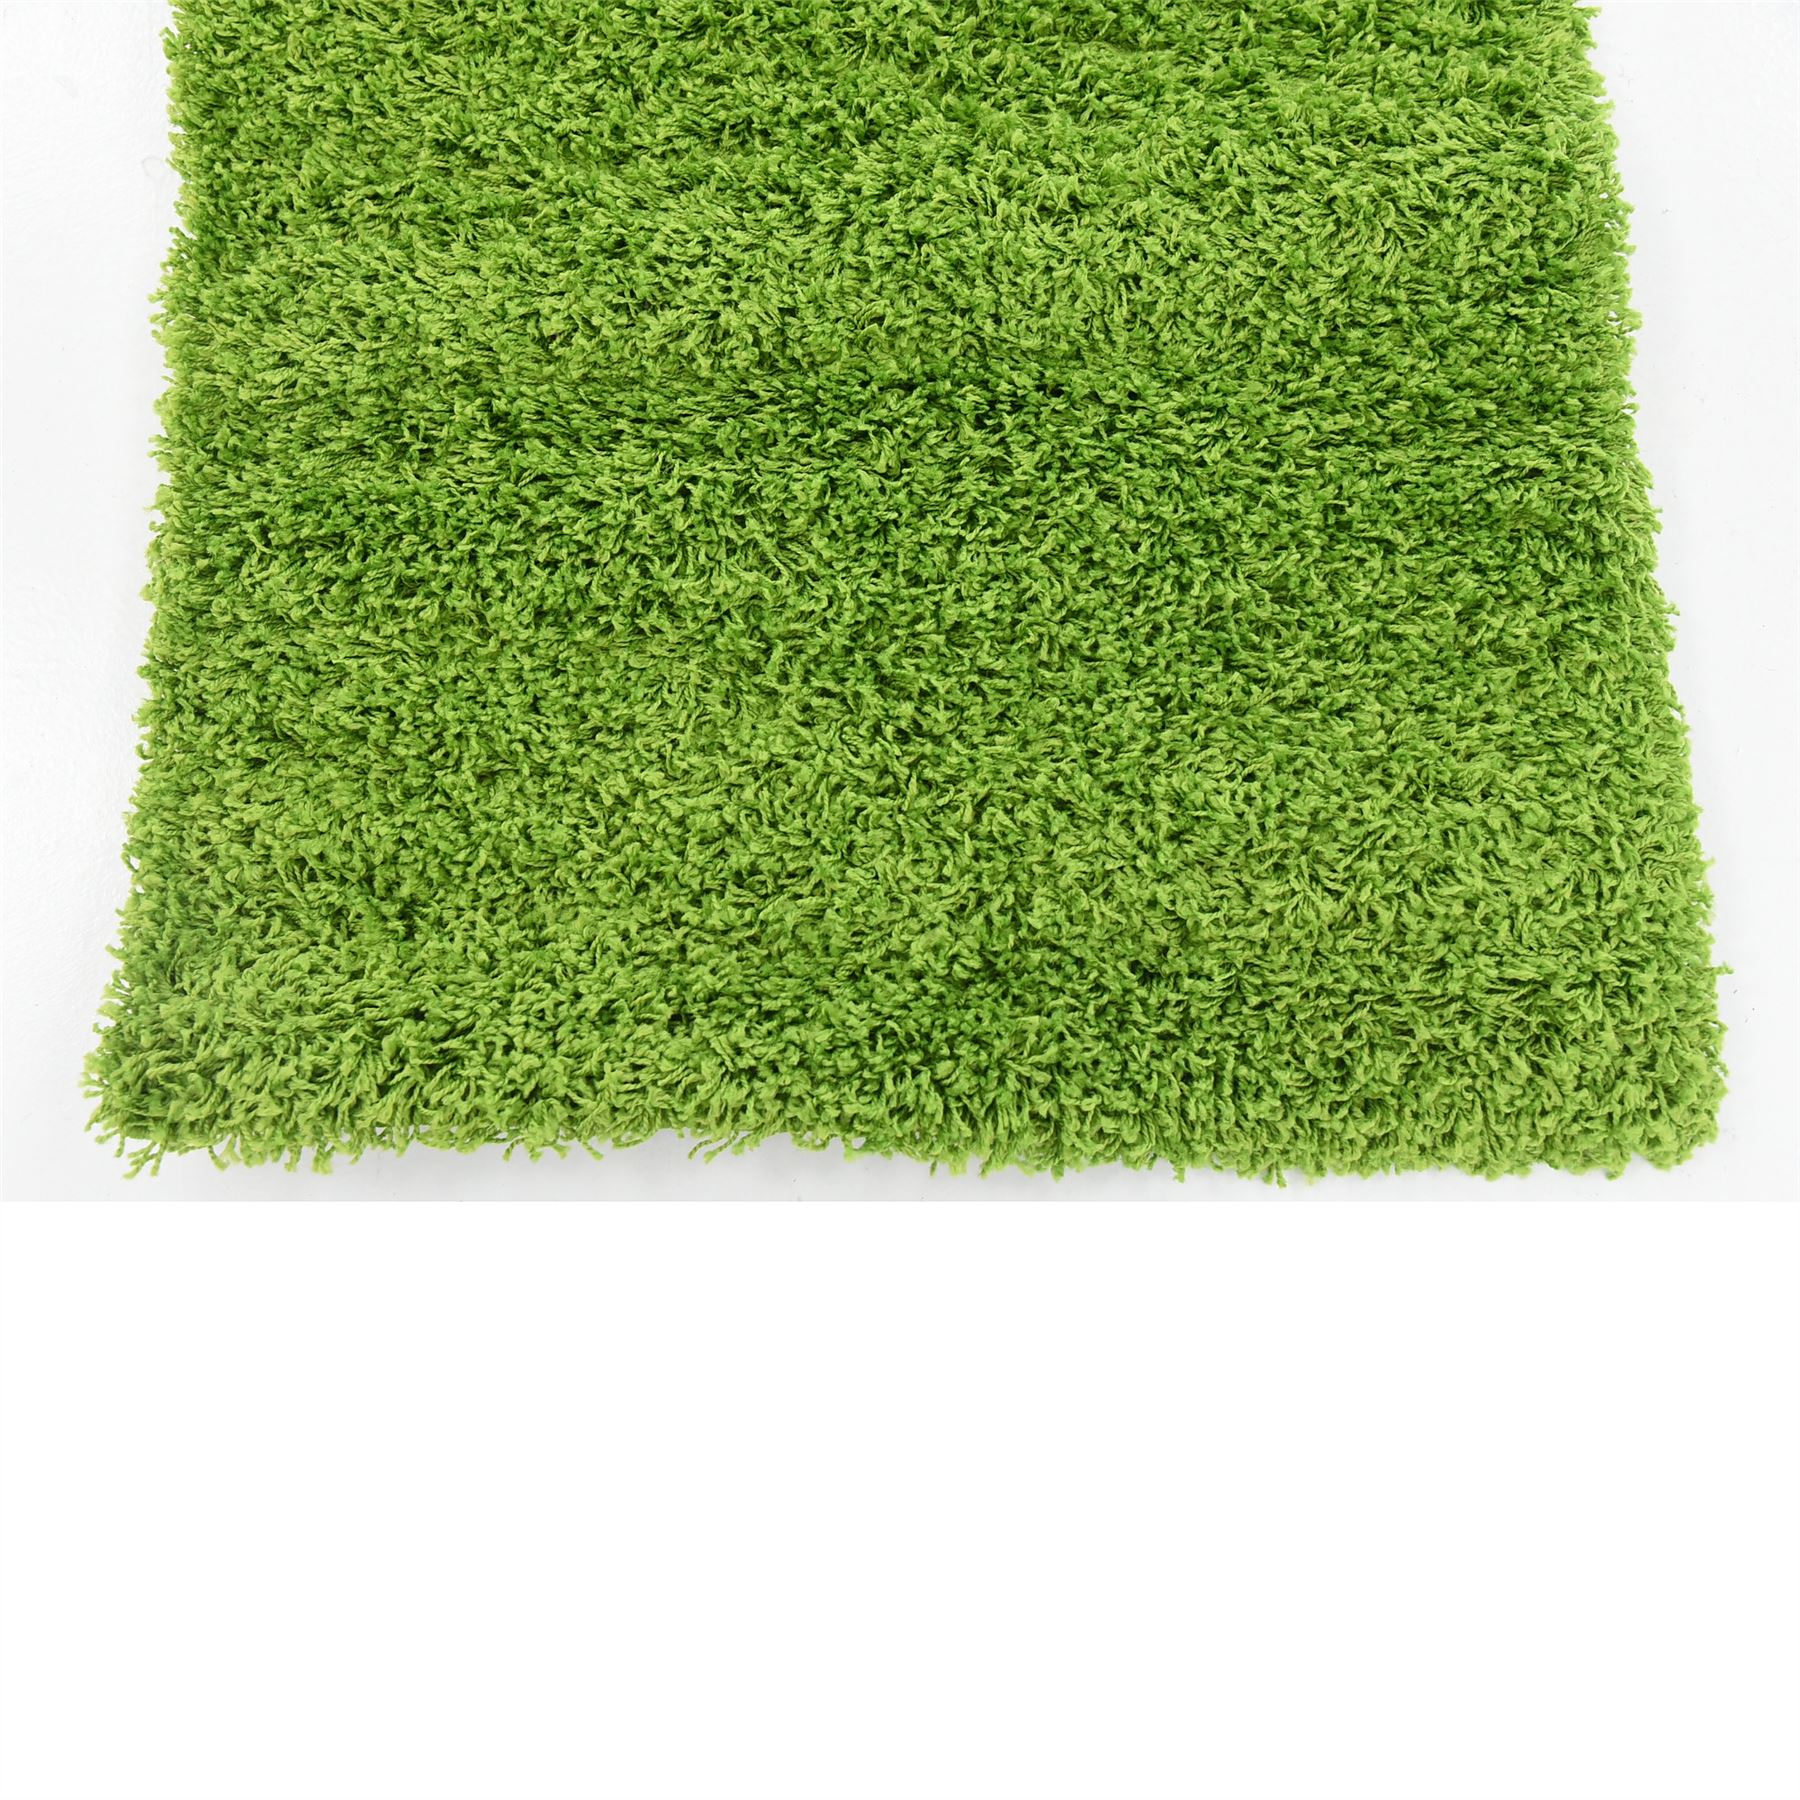 Modern Rugs Floor Carpet Area Grass Green 2' 5 X 10' Solid